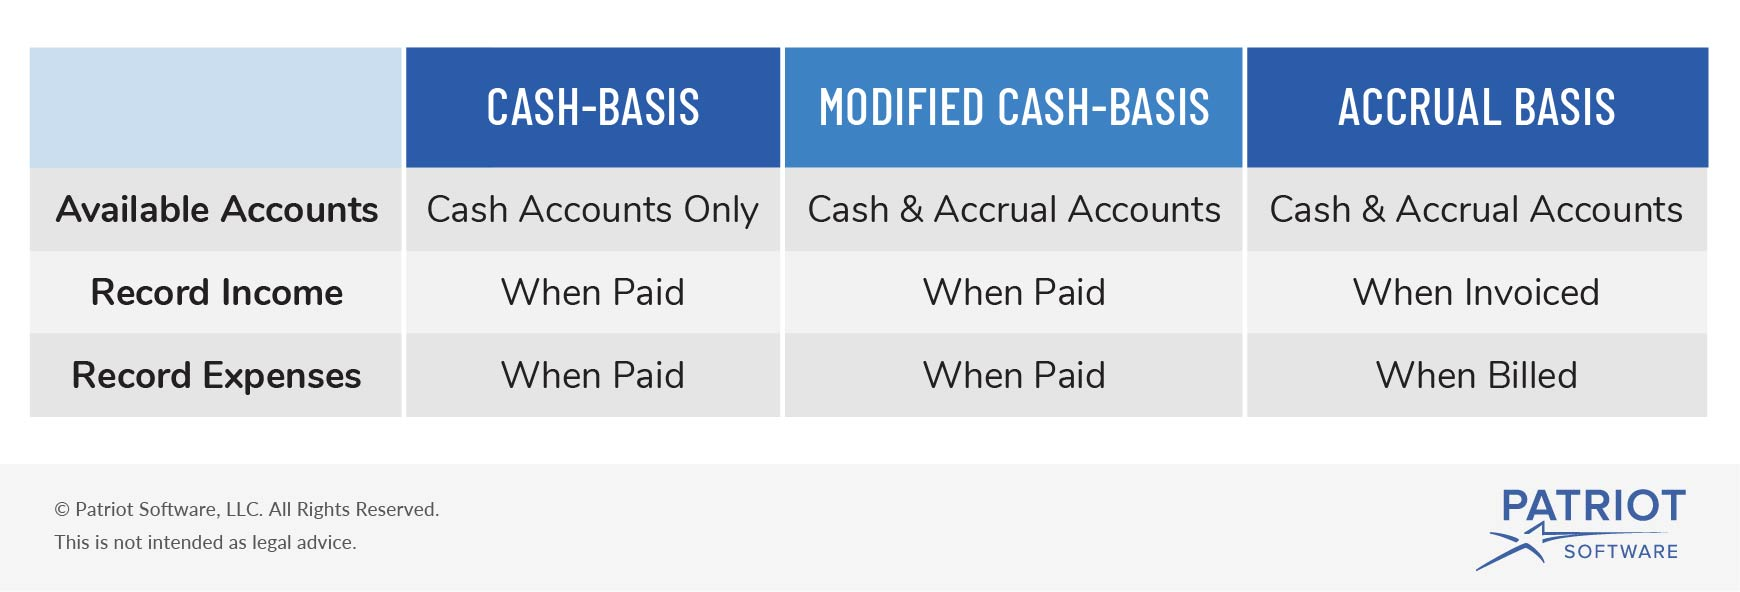 modified cash basis accounting